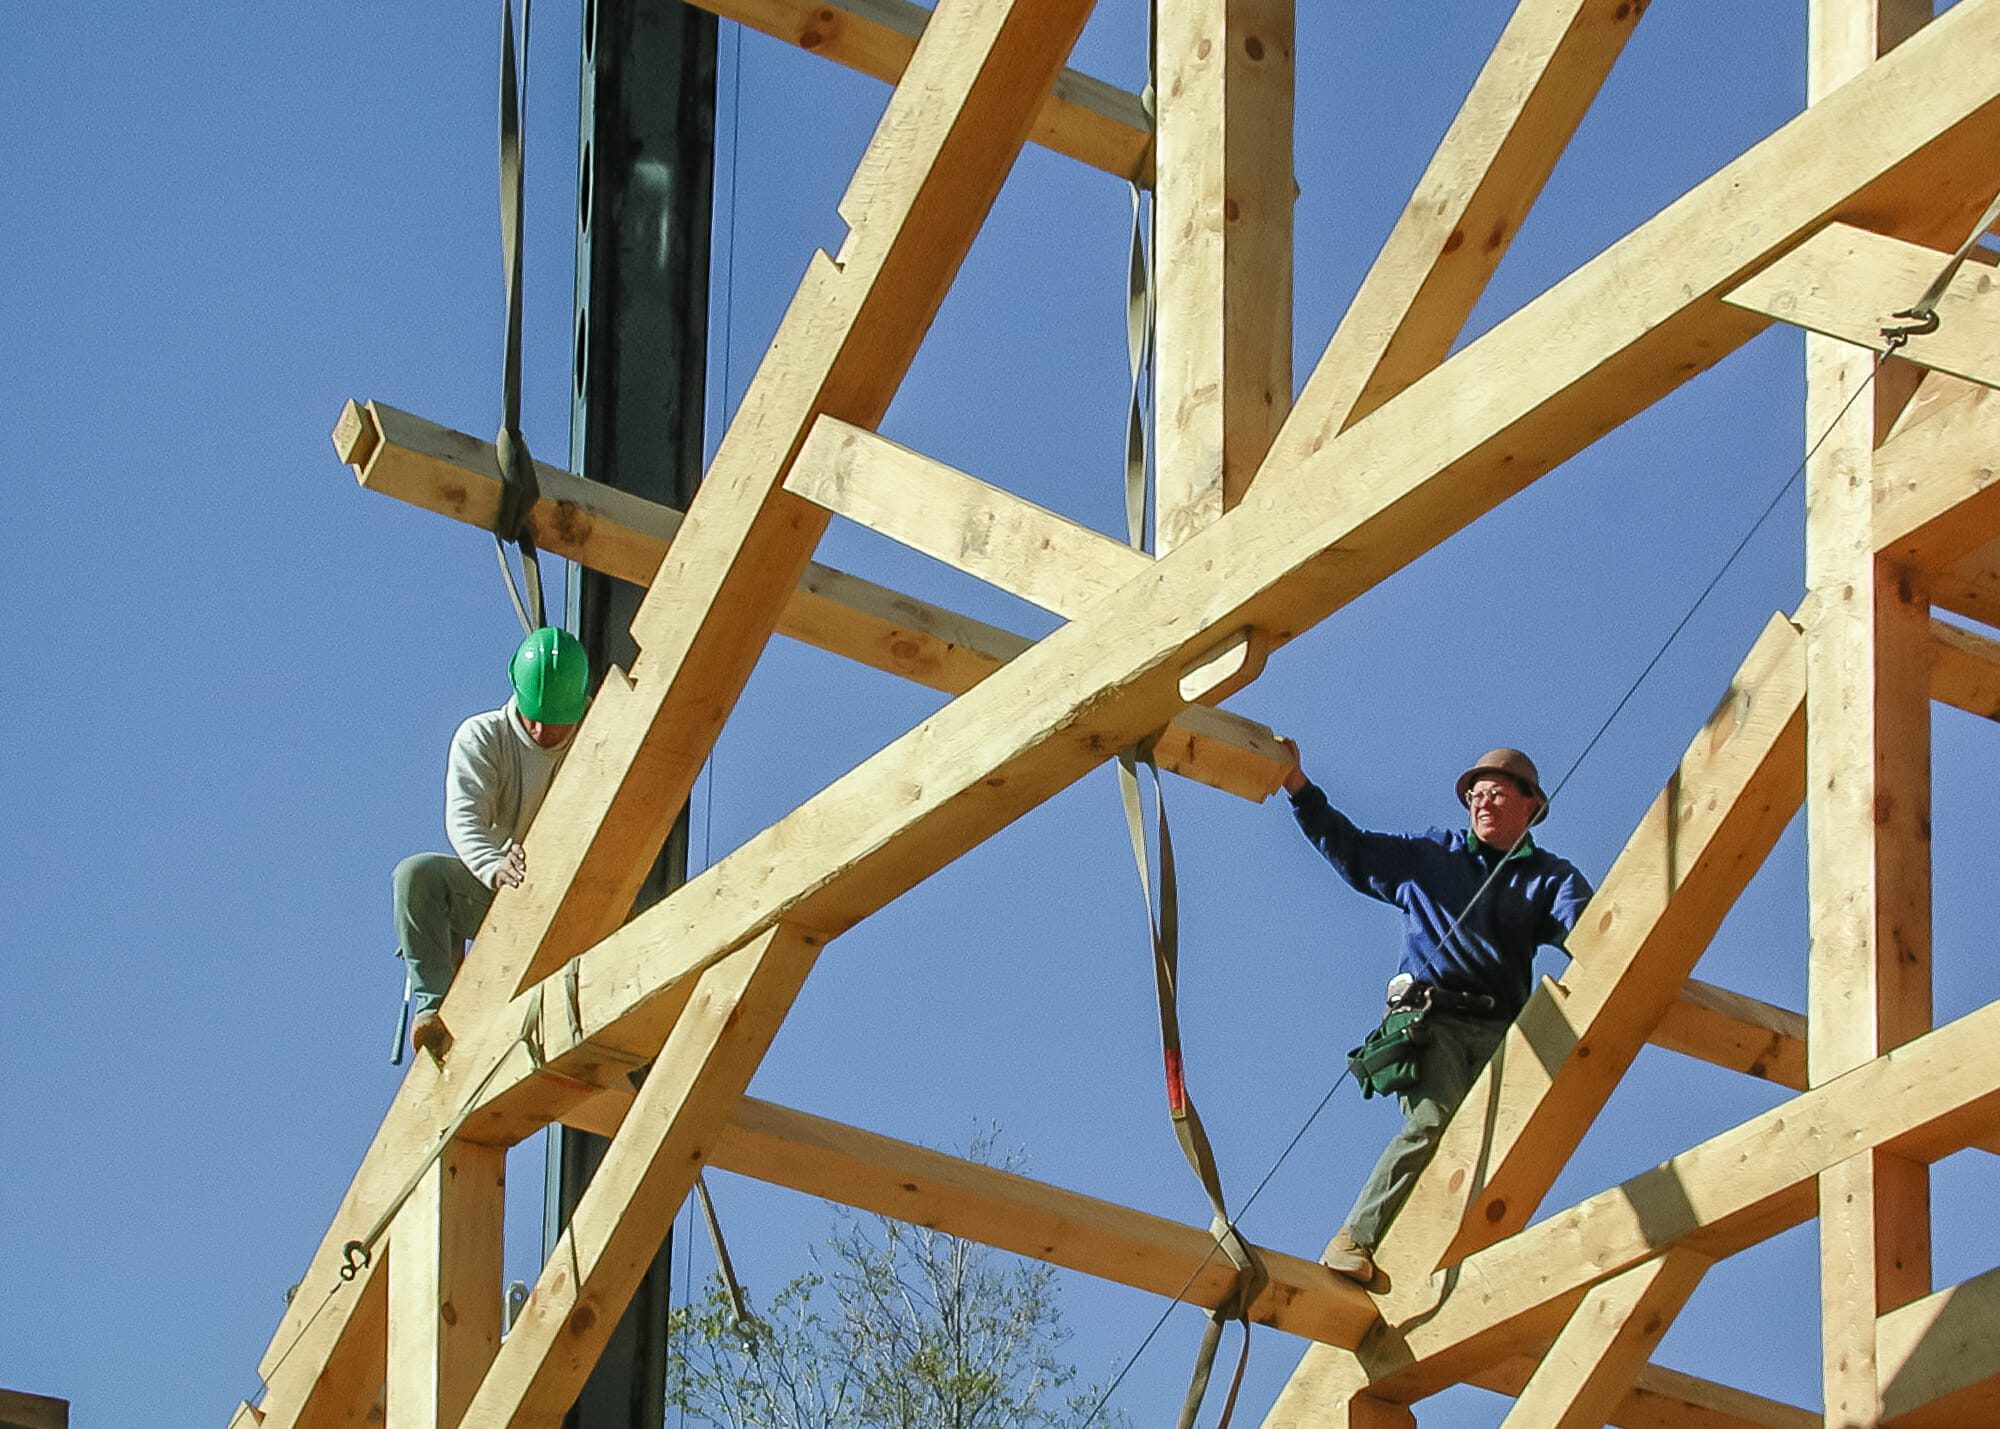 Dovetailed Joints For Wood Joists And Purlins